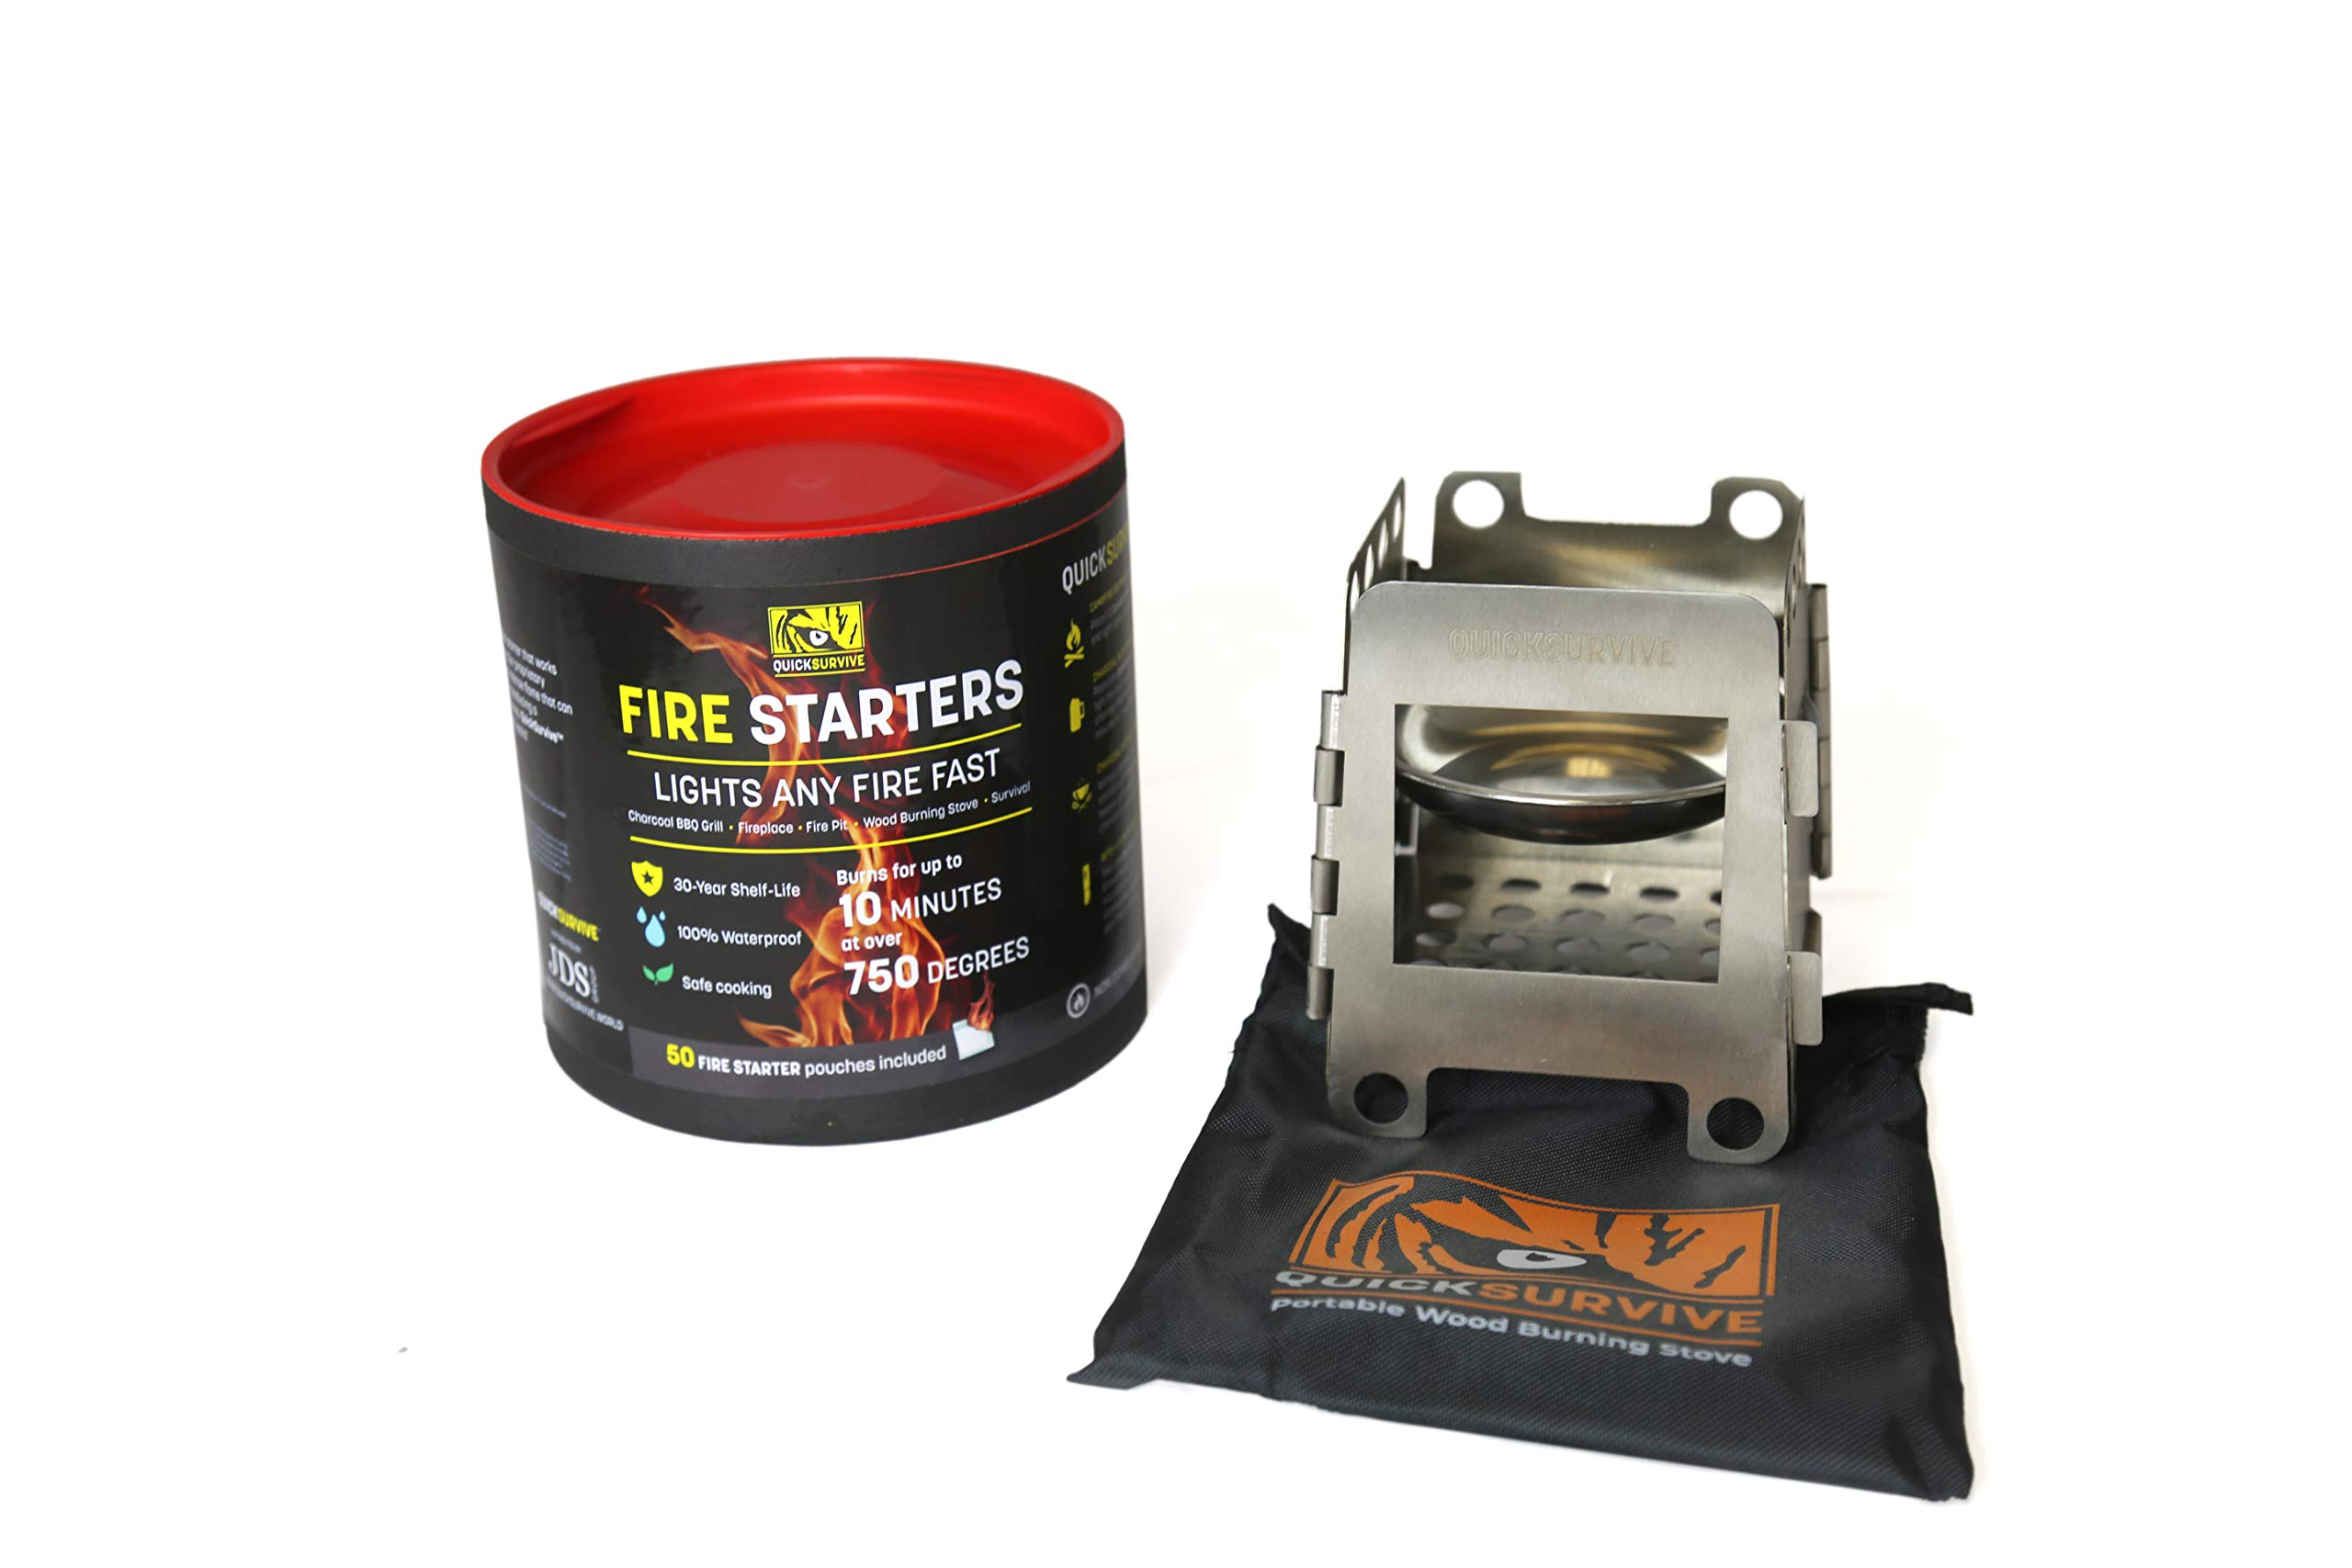 QuickSurvive Mini Survival Wood Burning Stove and All-Purpose Fire Starters (Stove + 50 Fire Starters) by QUICKSURVIVE